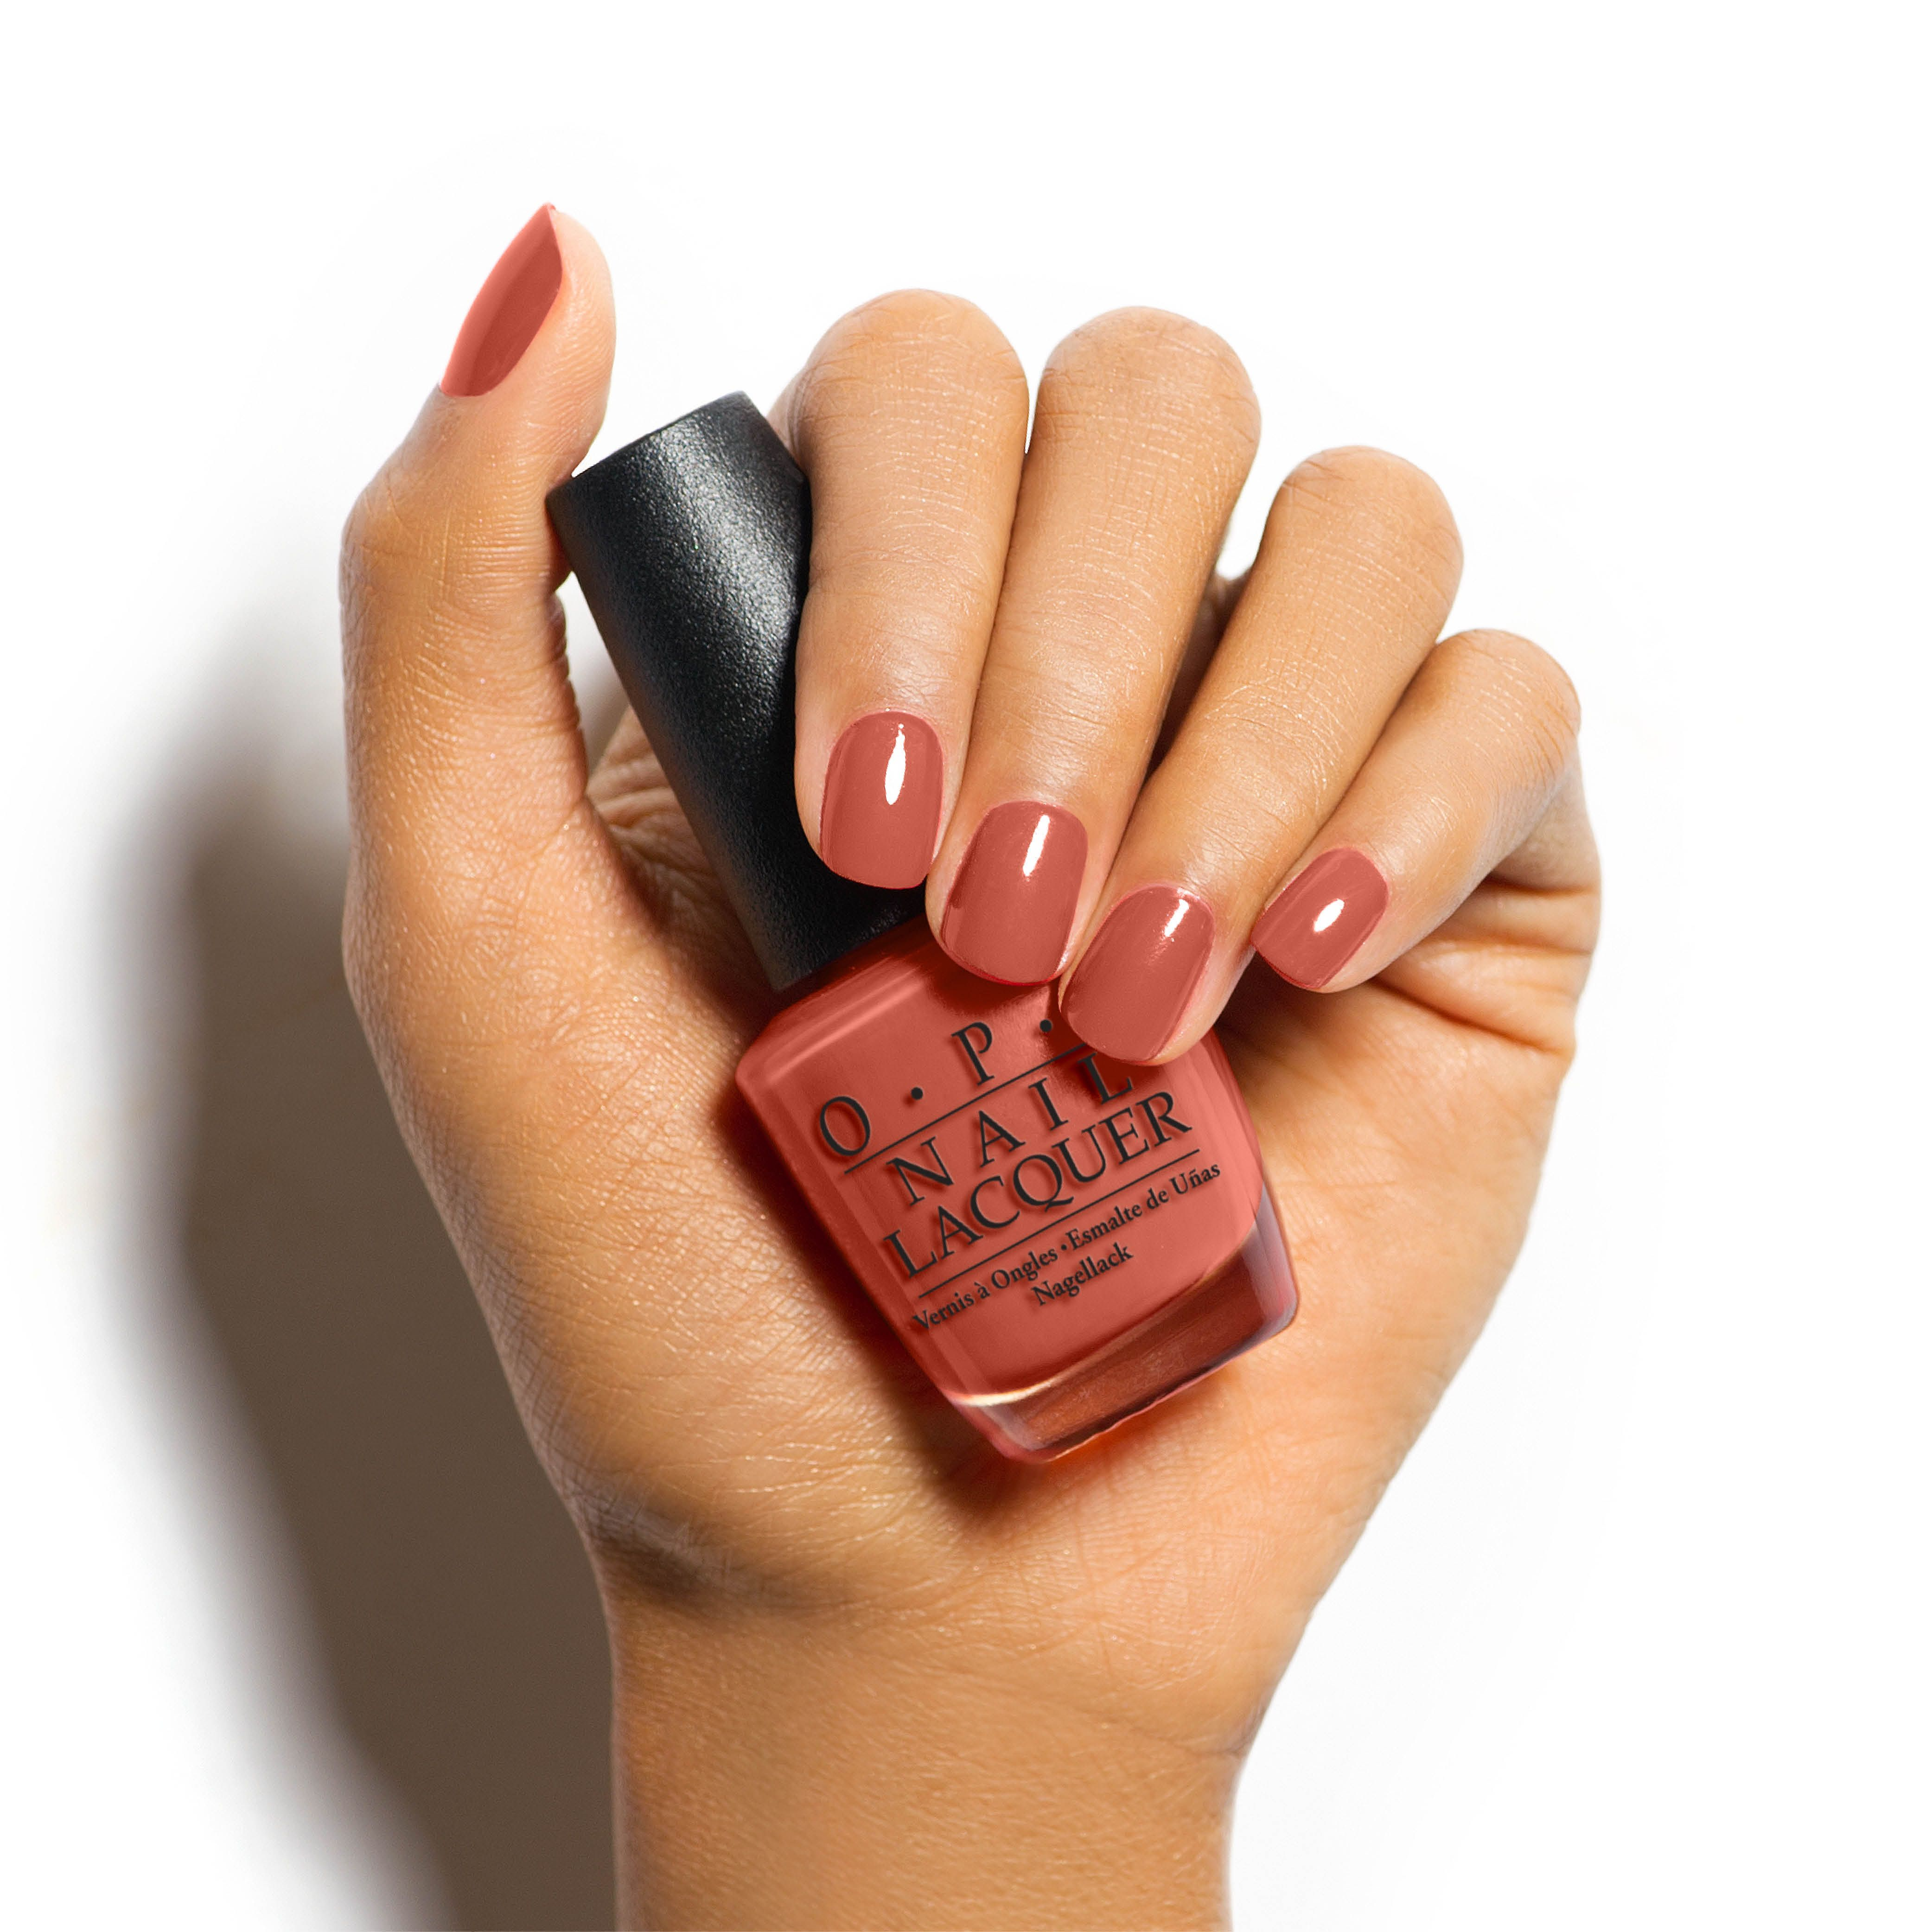 Yank My Doodle: Get a tawny copper mani and call it macaroni ...